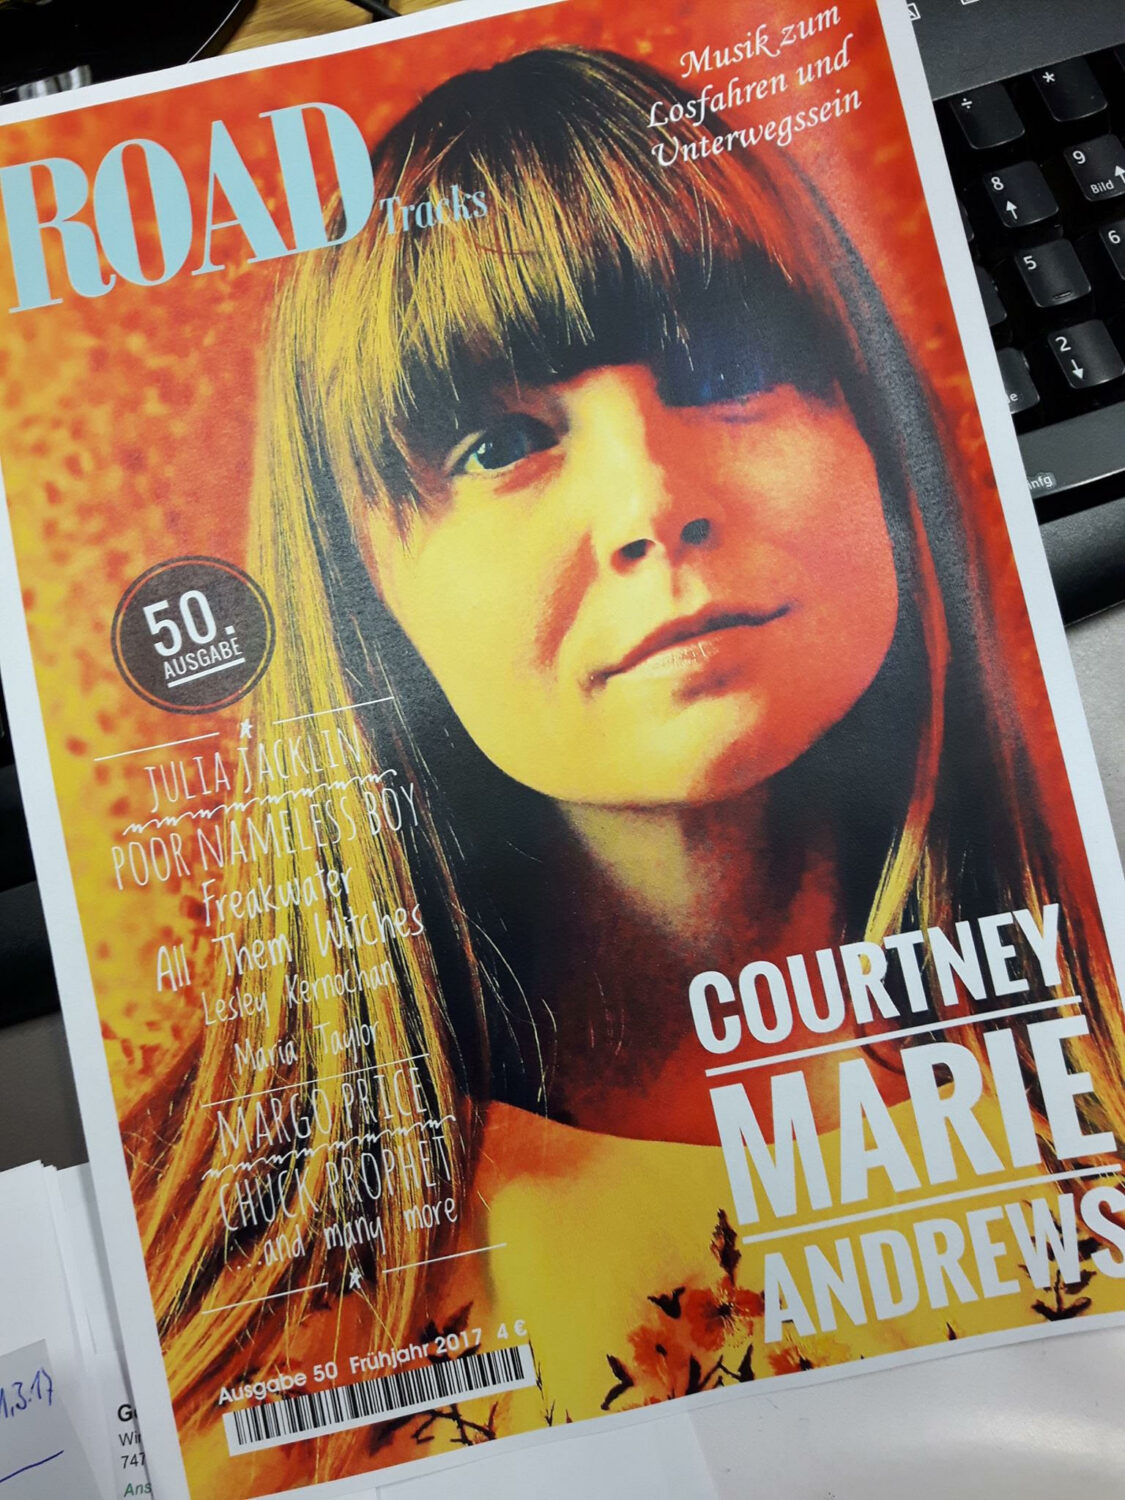 Courtney Marie Andrews - Road Tracks